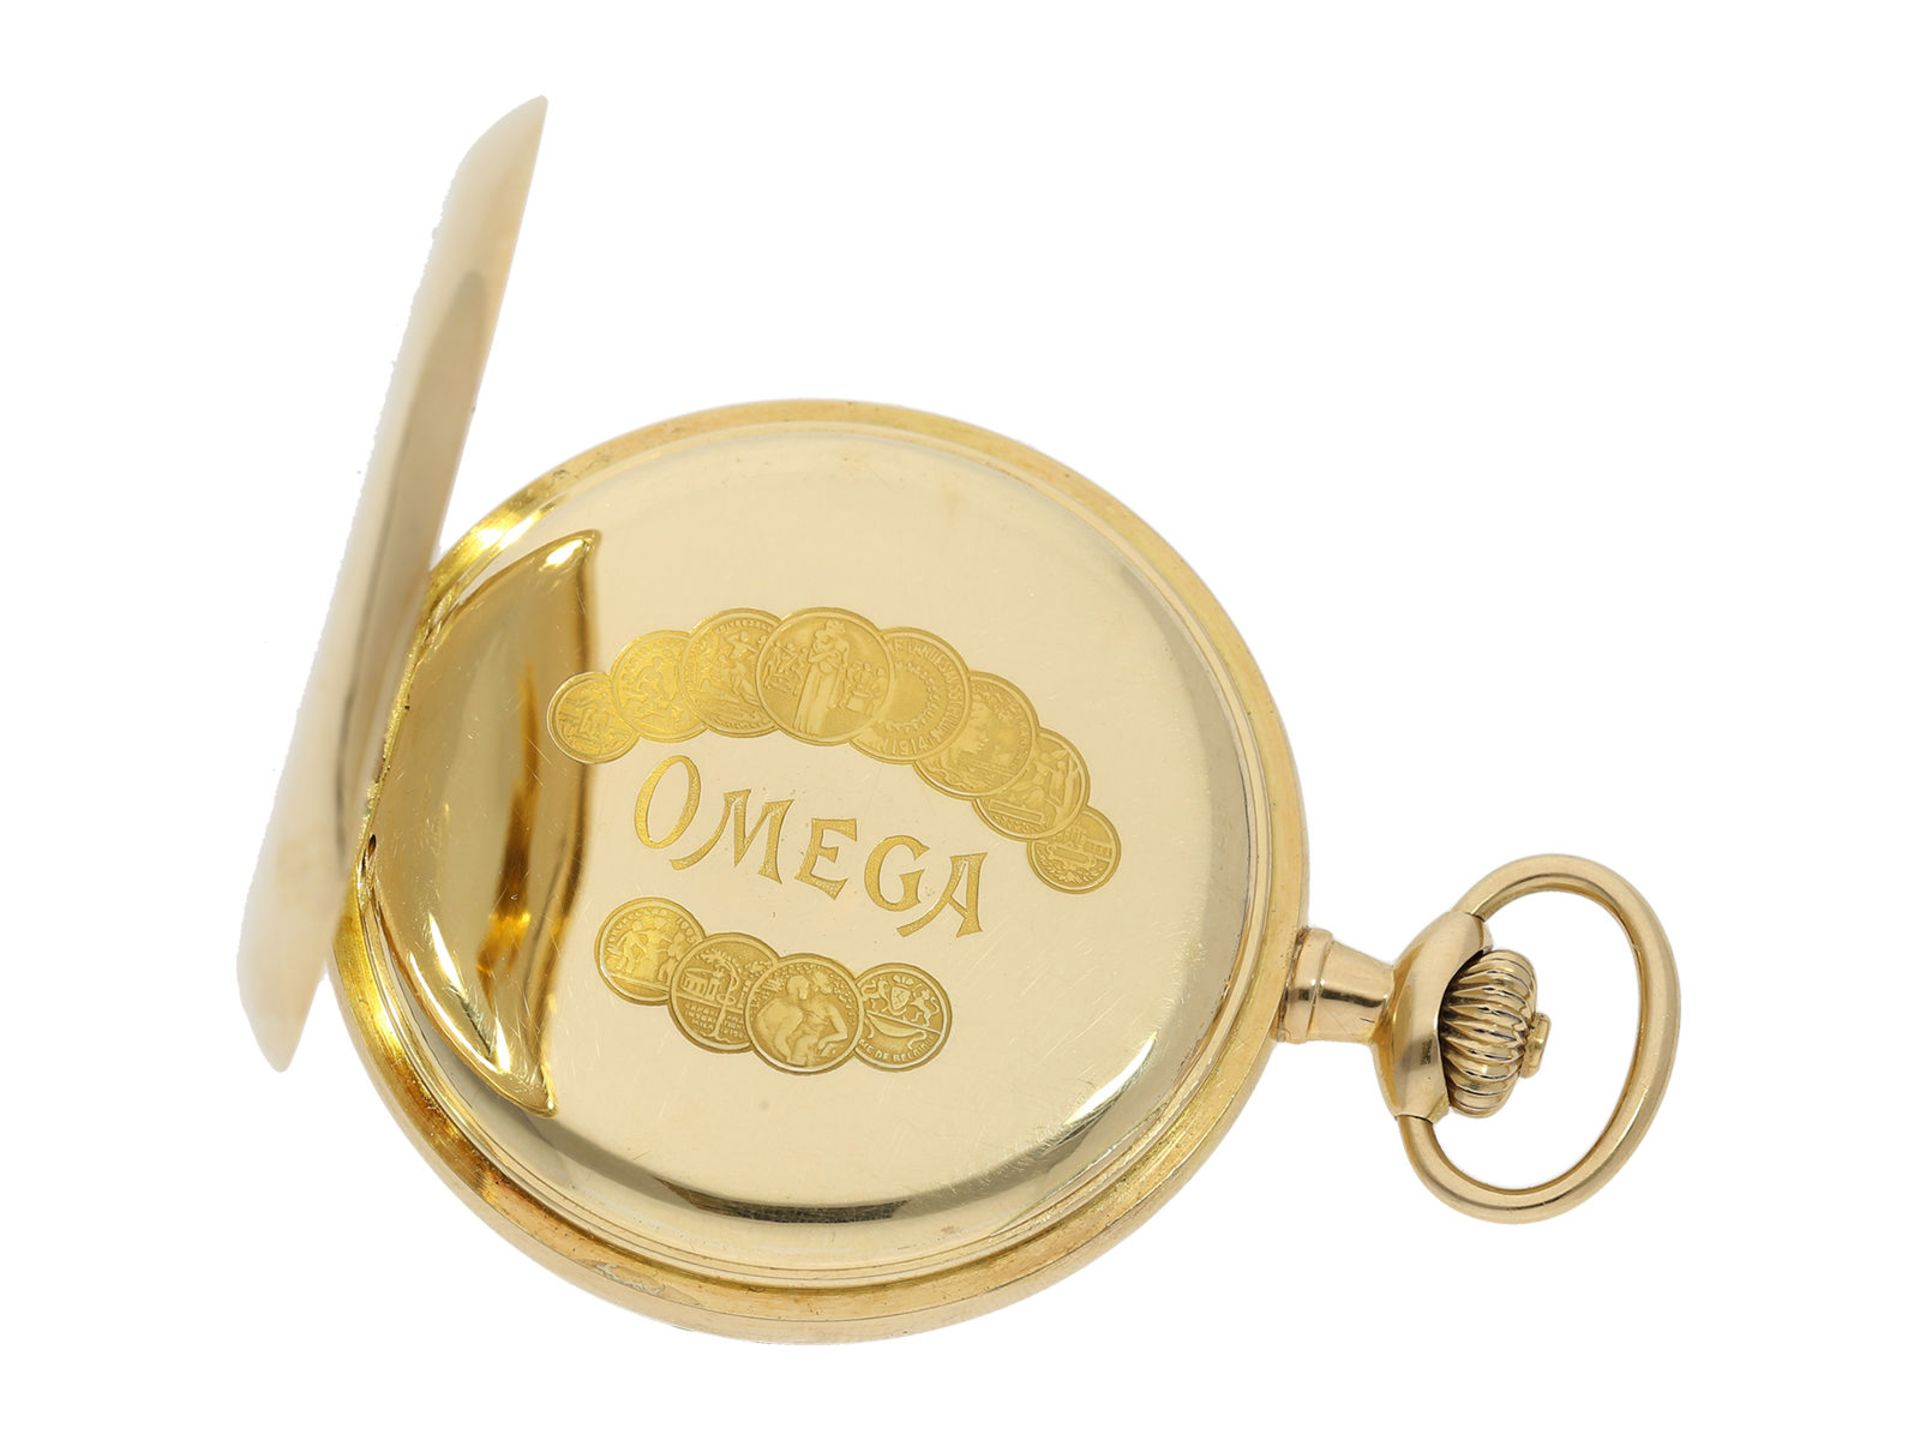 Pocket watch: Omega gold hunting case watch, ca. 1912 - Bild 5 aus 8